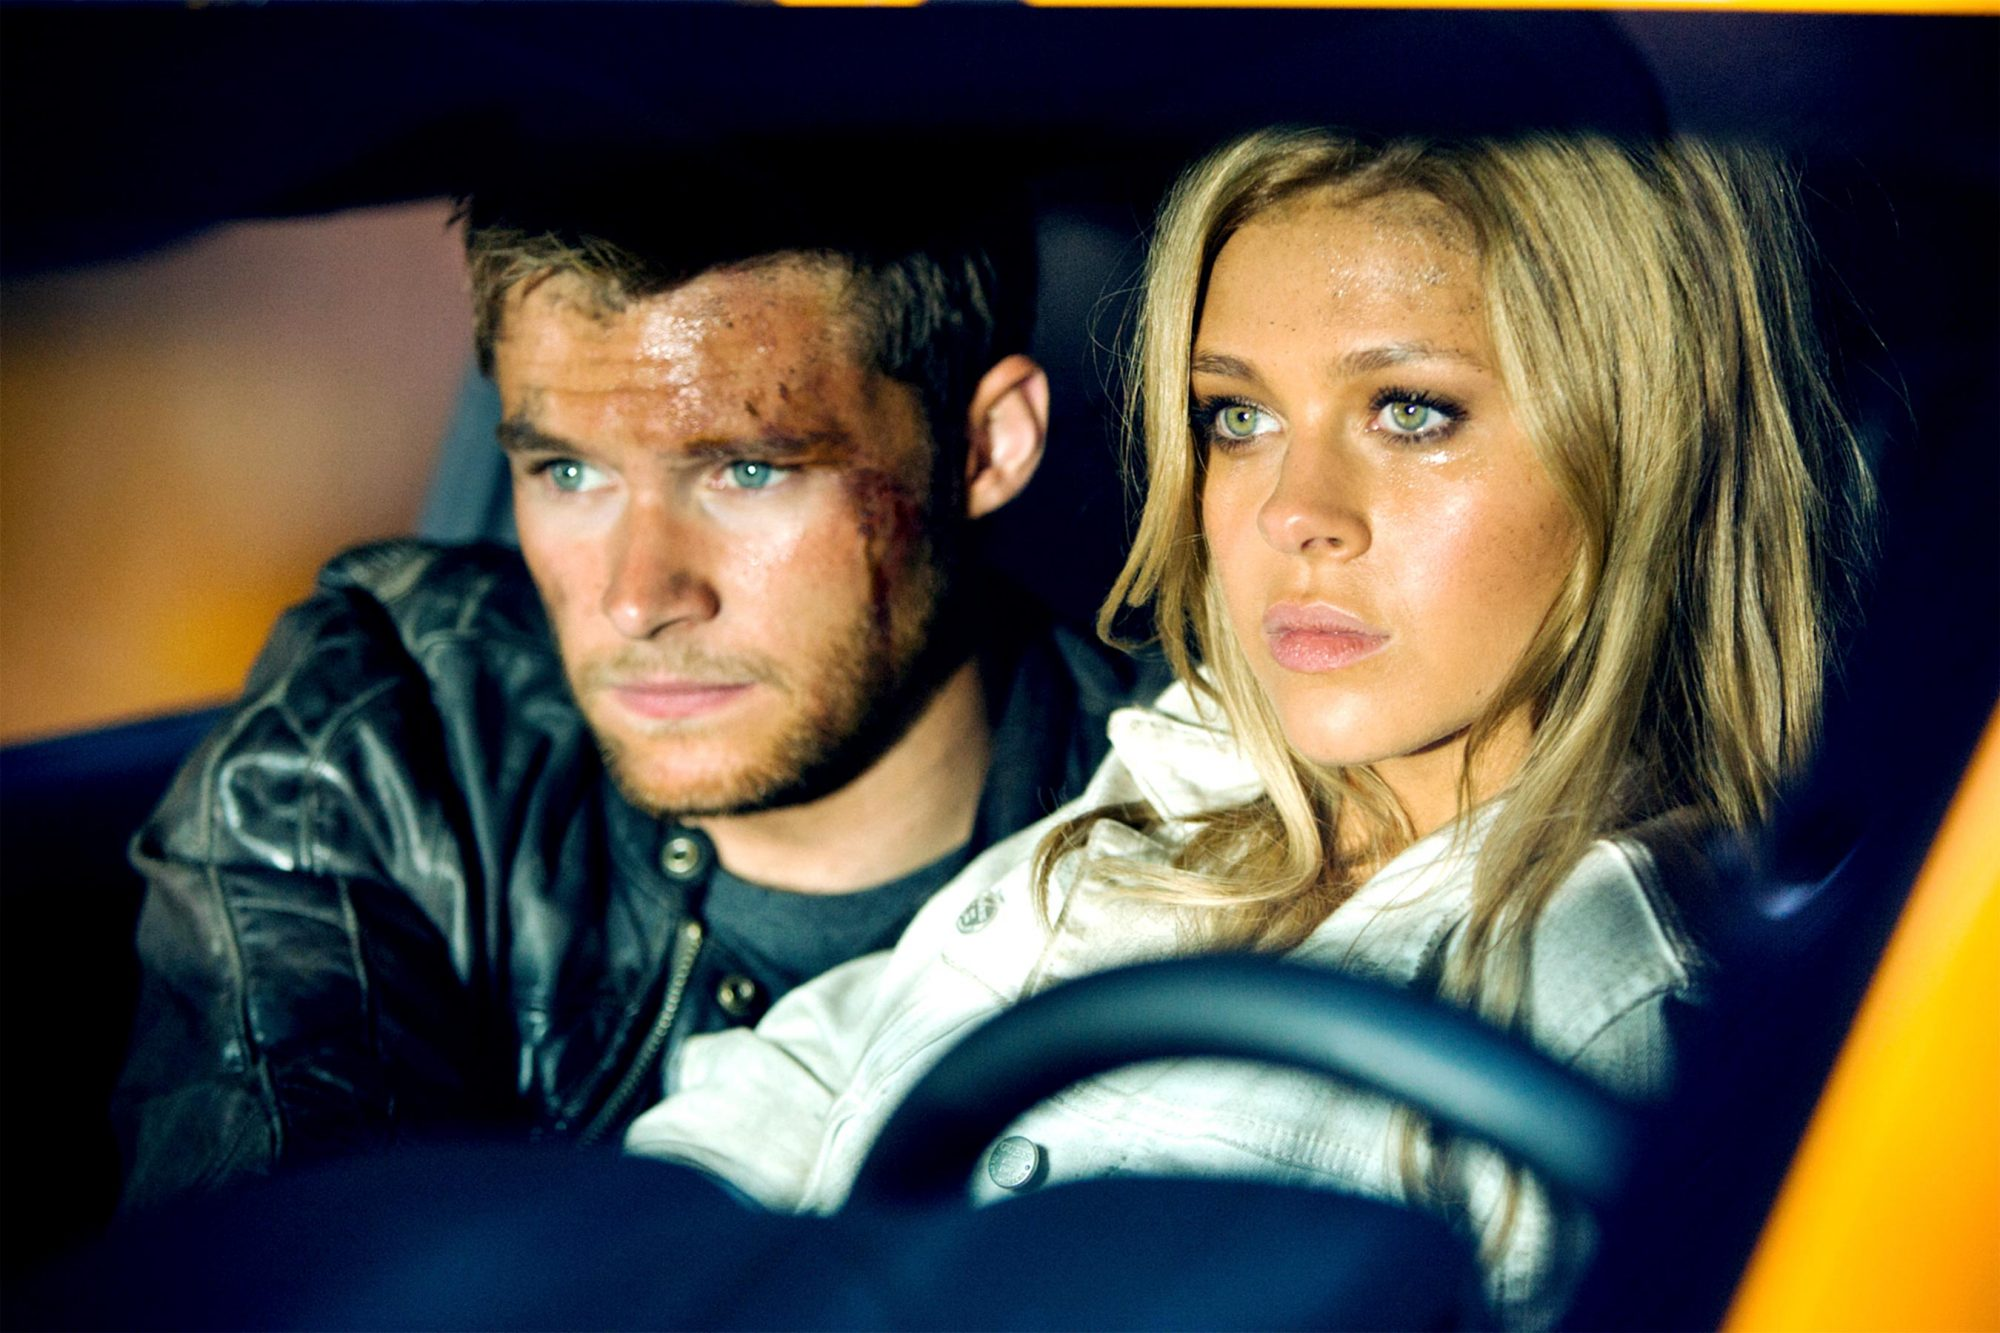 TRANSFORMERS: AGE OF EXTINCTION, from left: Jack Reynor, Nicola Peltz, 2014. ph: Andrew Cooper/©Paramount Pictures/Courtesy Everett Collection